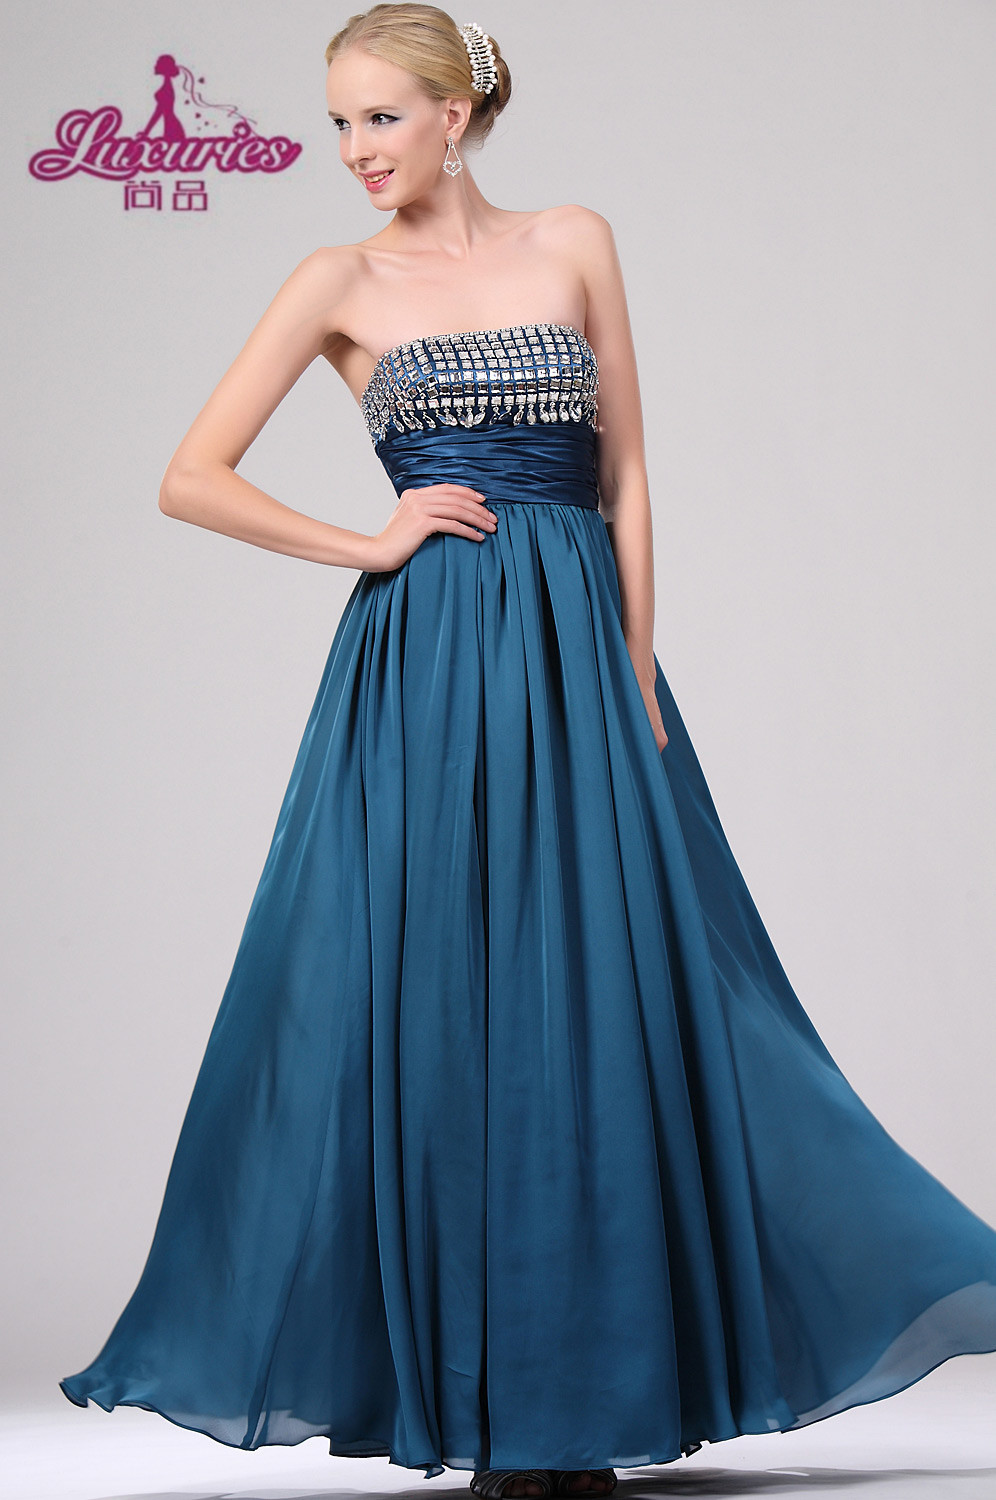 Sexy Grecian Style Prom Dresses | Dress images